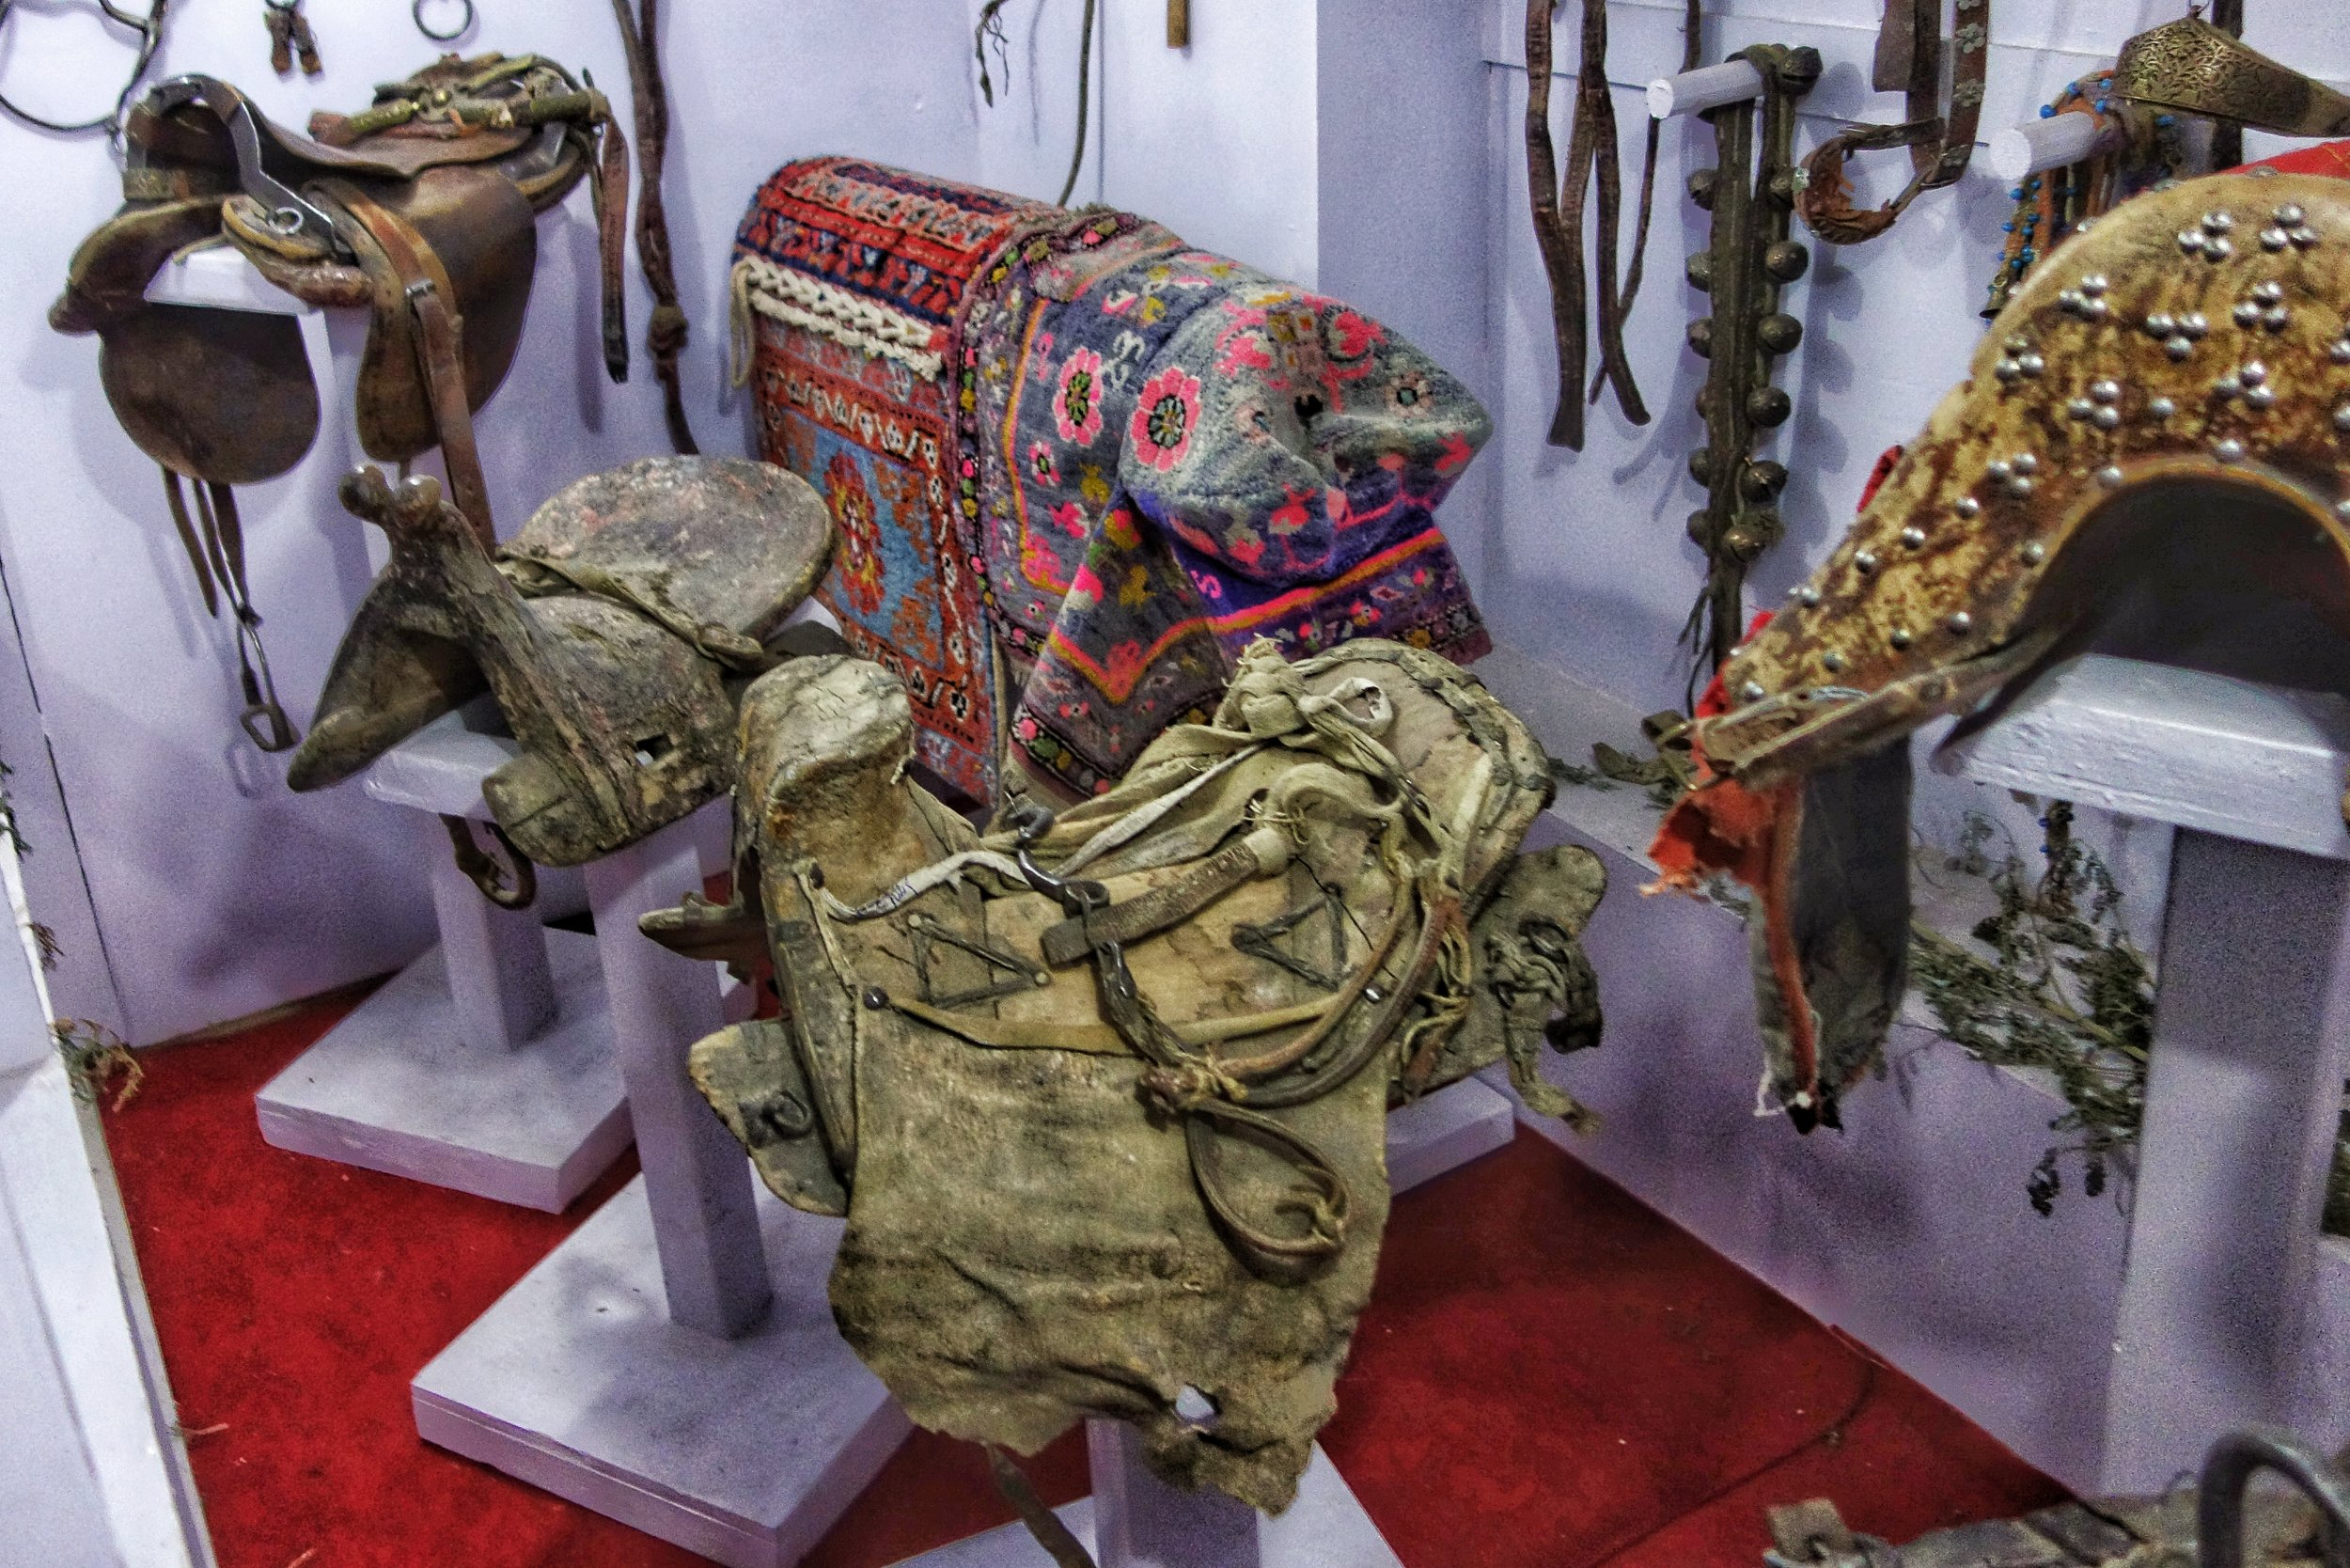 Saddles from Central Asia.